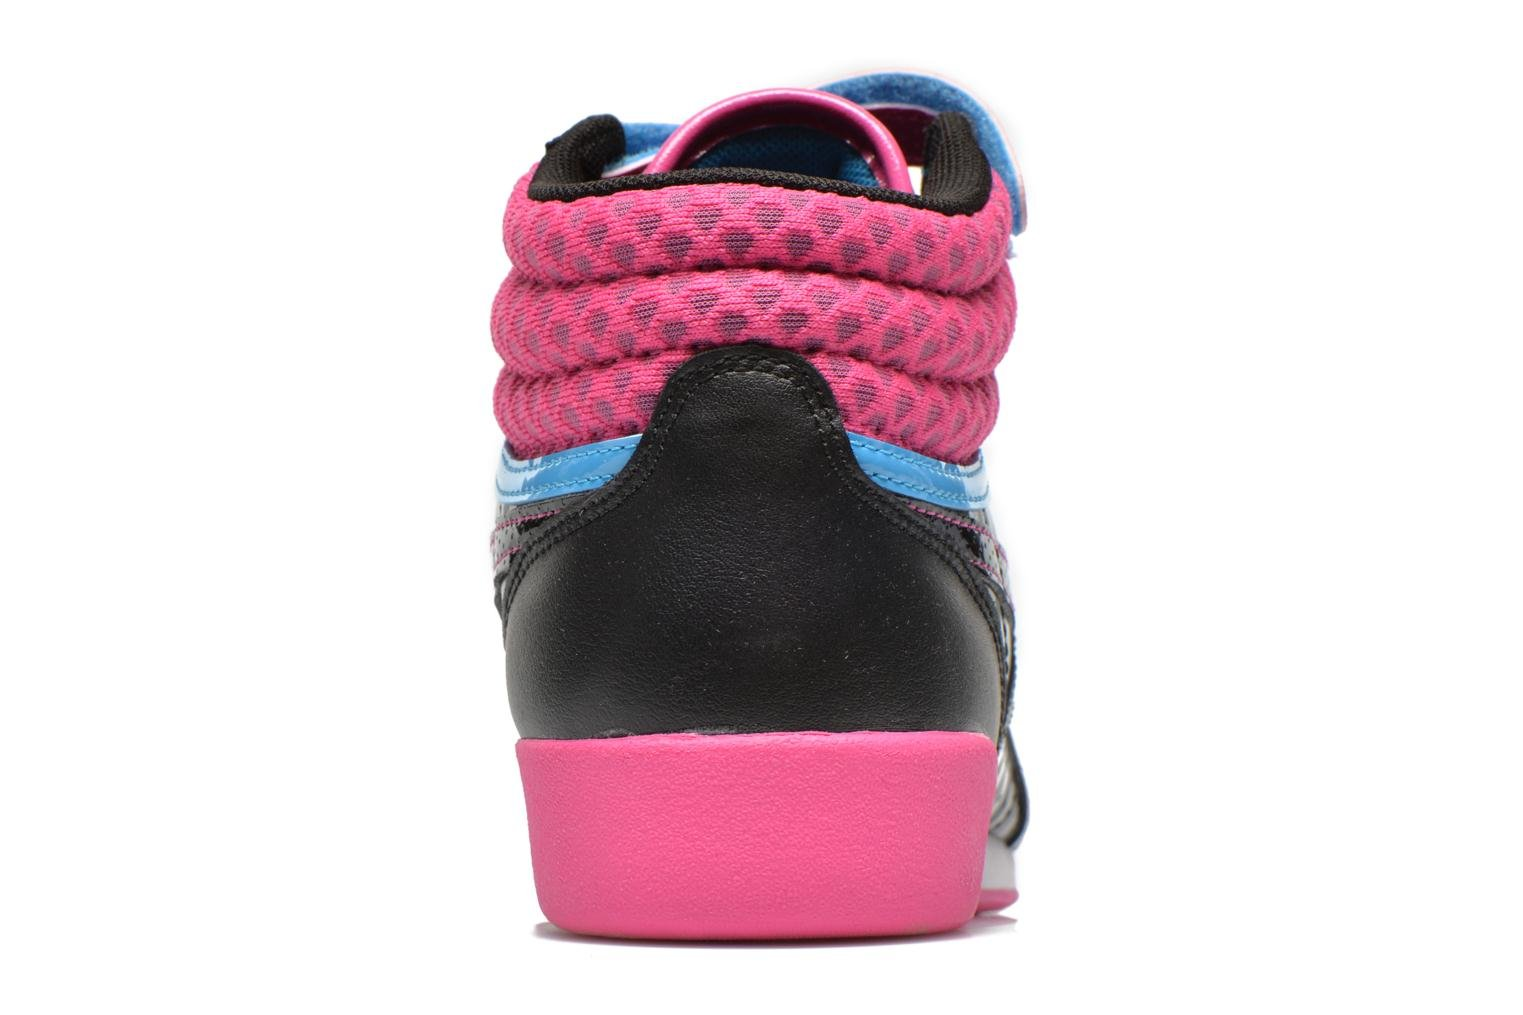 F/S Hi KIDS Black/Charged Pink/California Blue/White